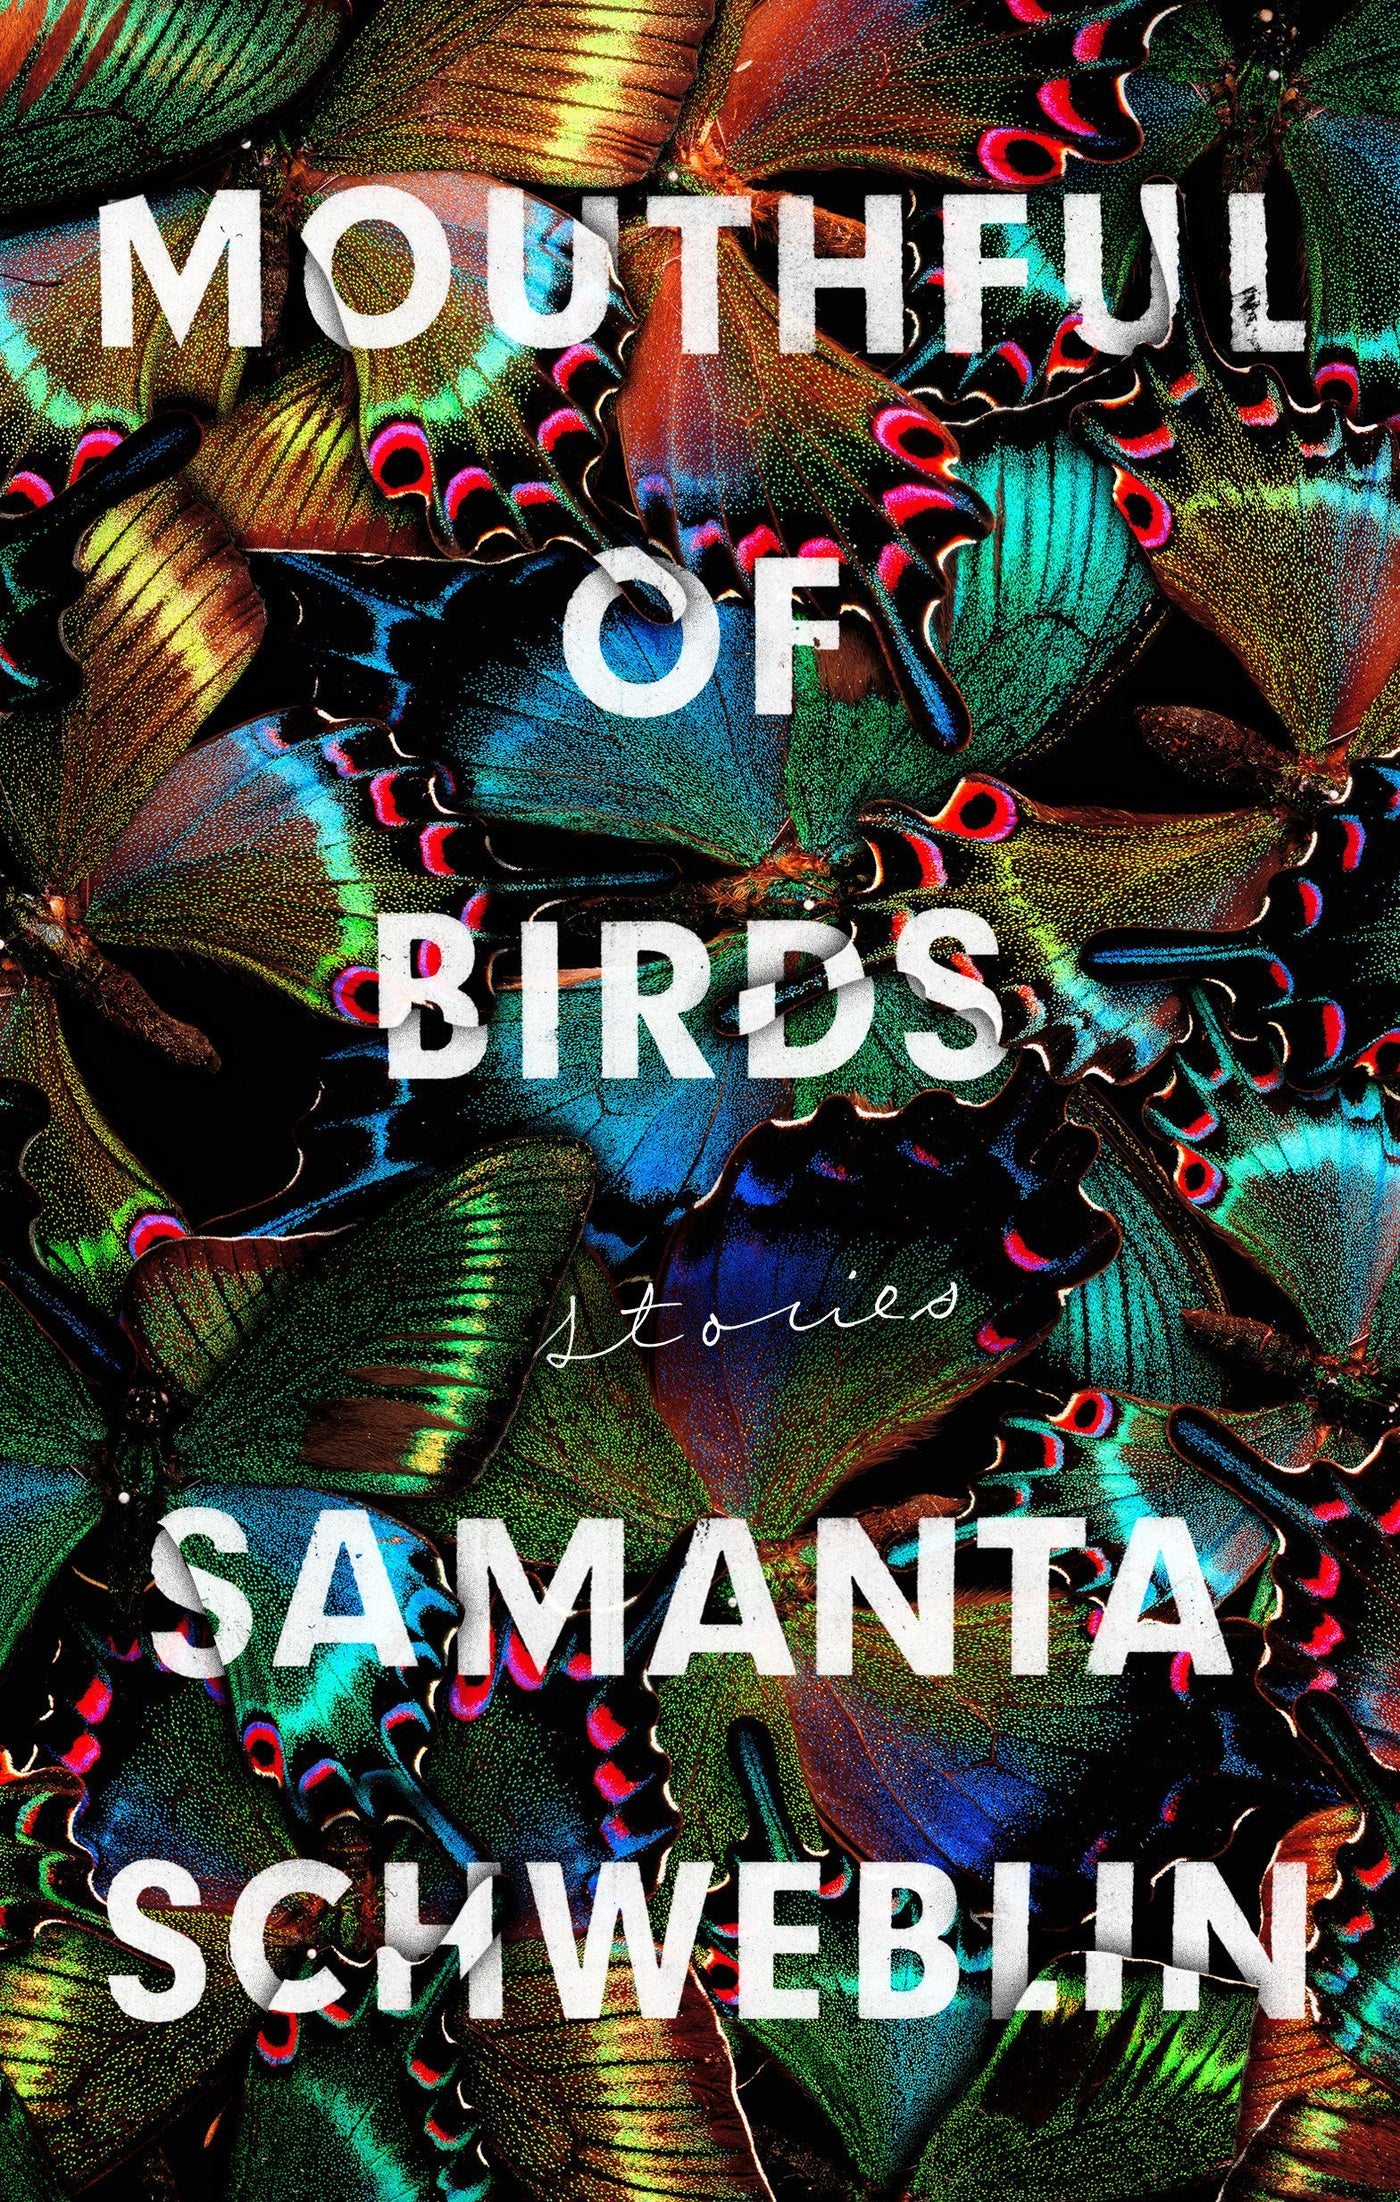 Mouthful of Birds: Stories by Samanta Schweblin